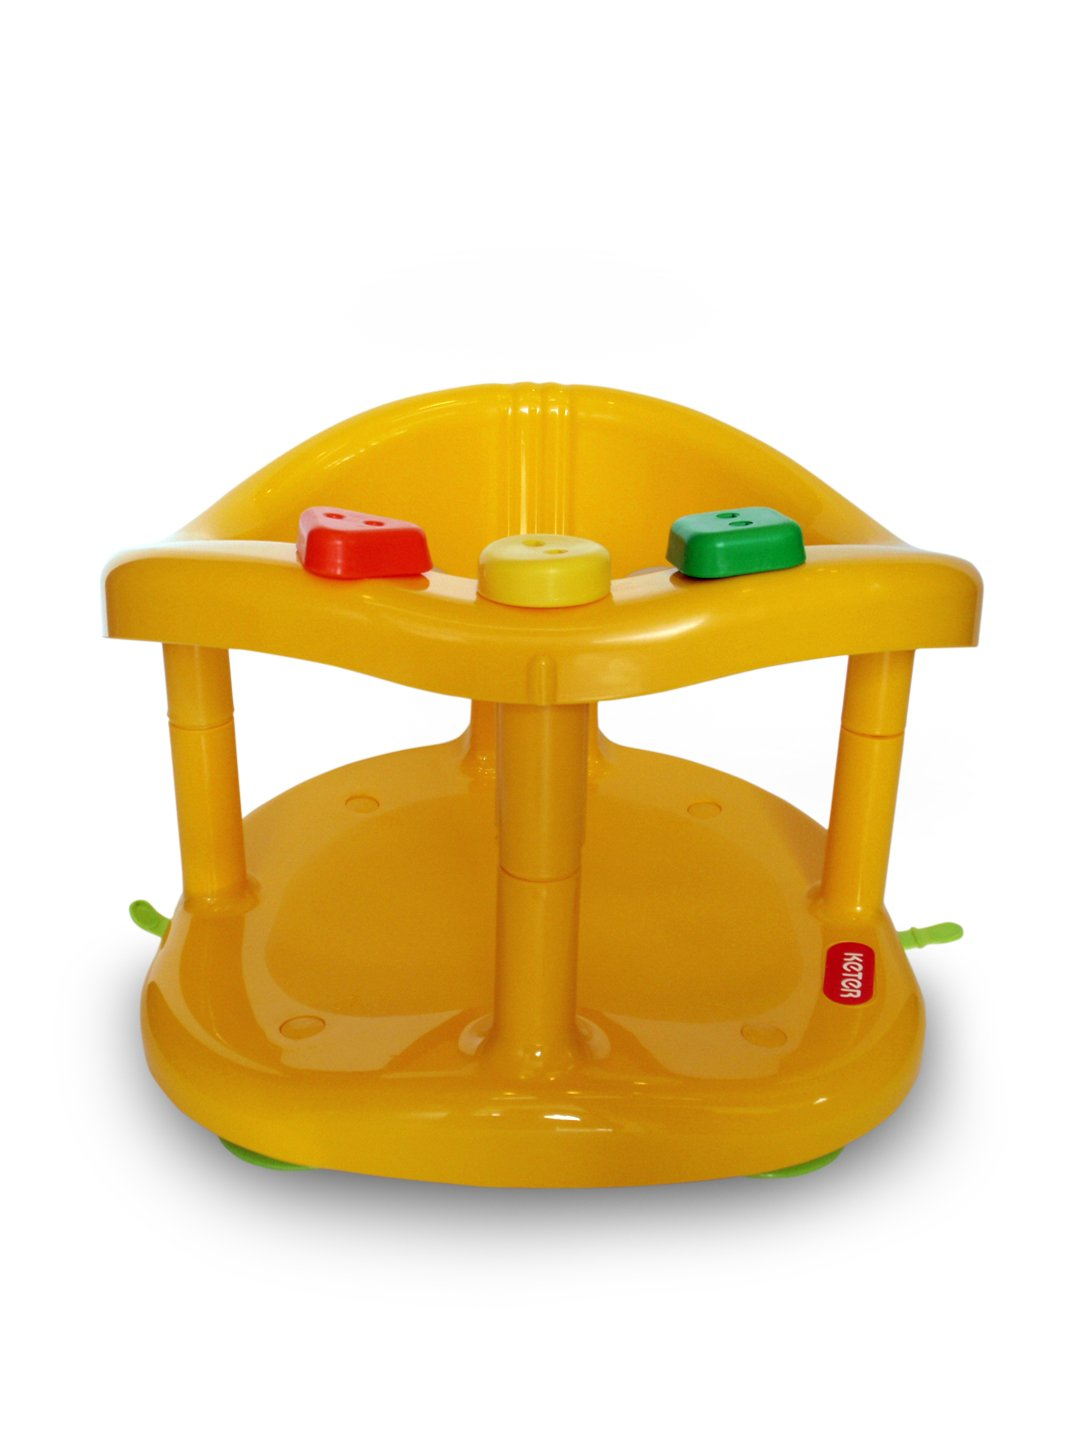 Buy Baby Bath Tub Ring Seat New in Box By KETER - Yellow Online at ...